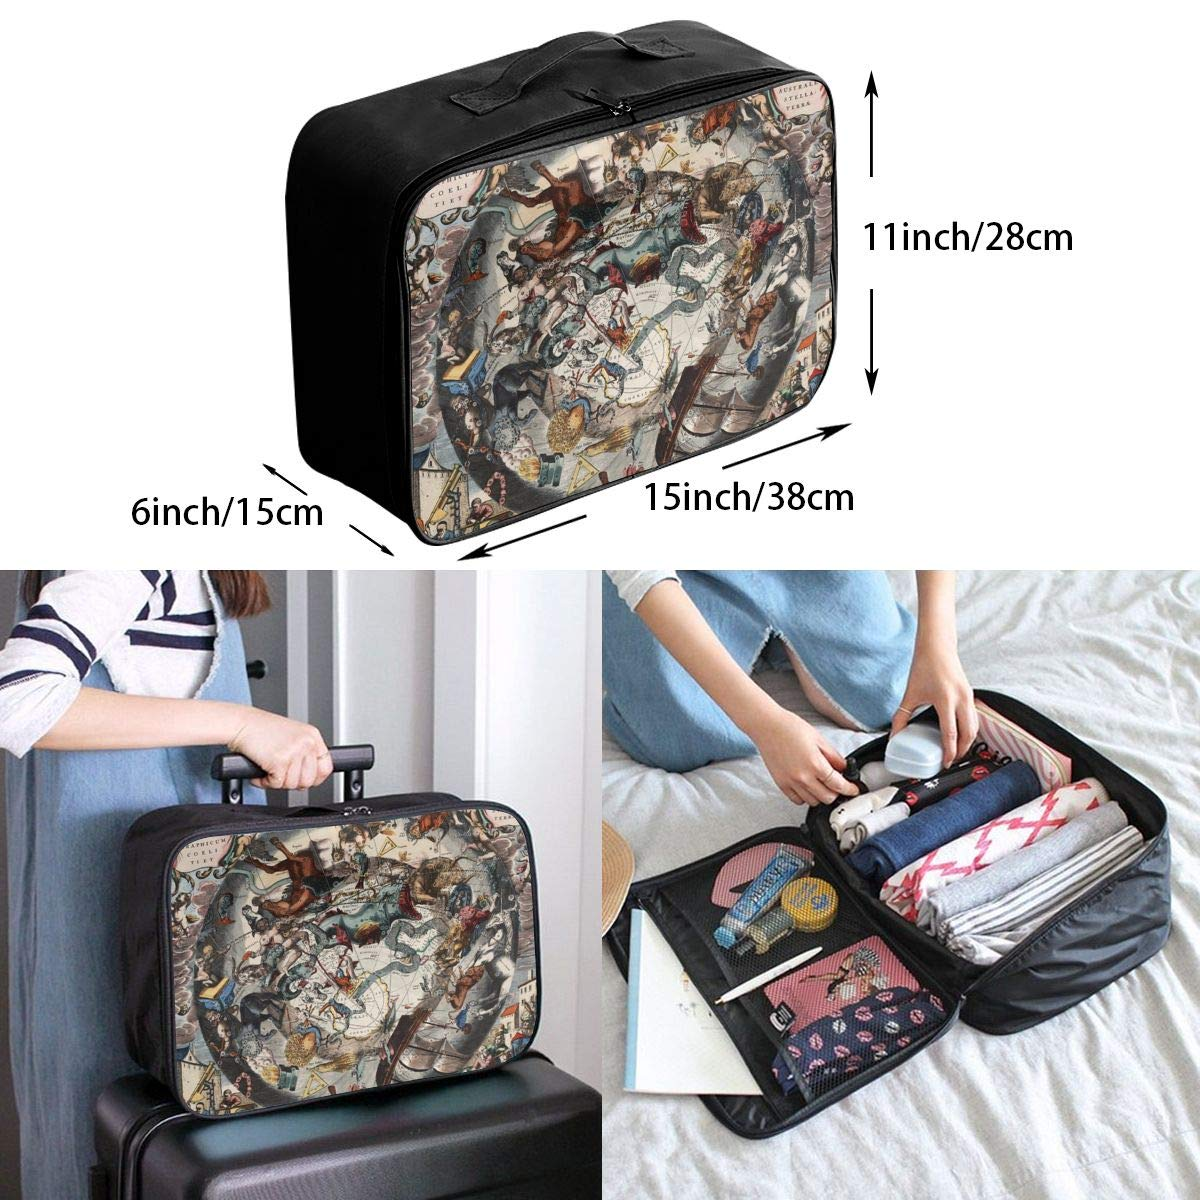 ADGAI Intricate Oil Painting Canvas Travel Weekender Bag,Fashion Custom Lightweight Large Capacity Portable Luggage Bag,Suitcase Trolley Bag